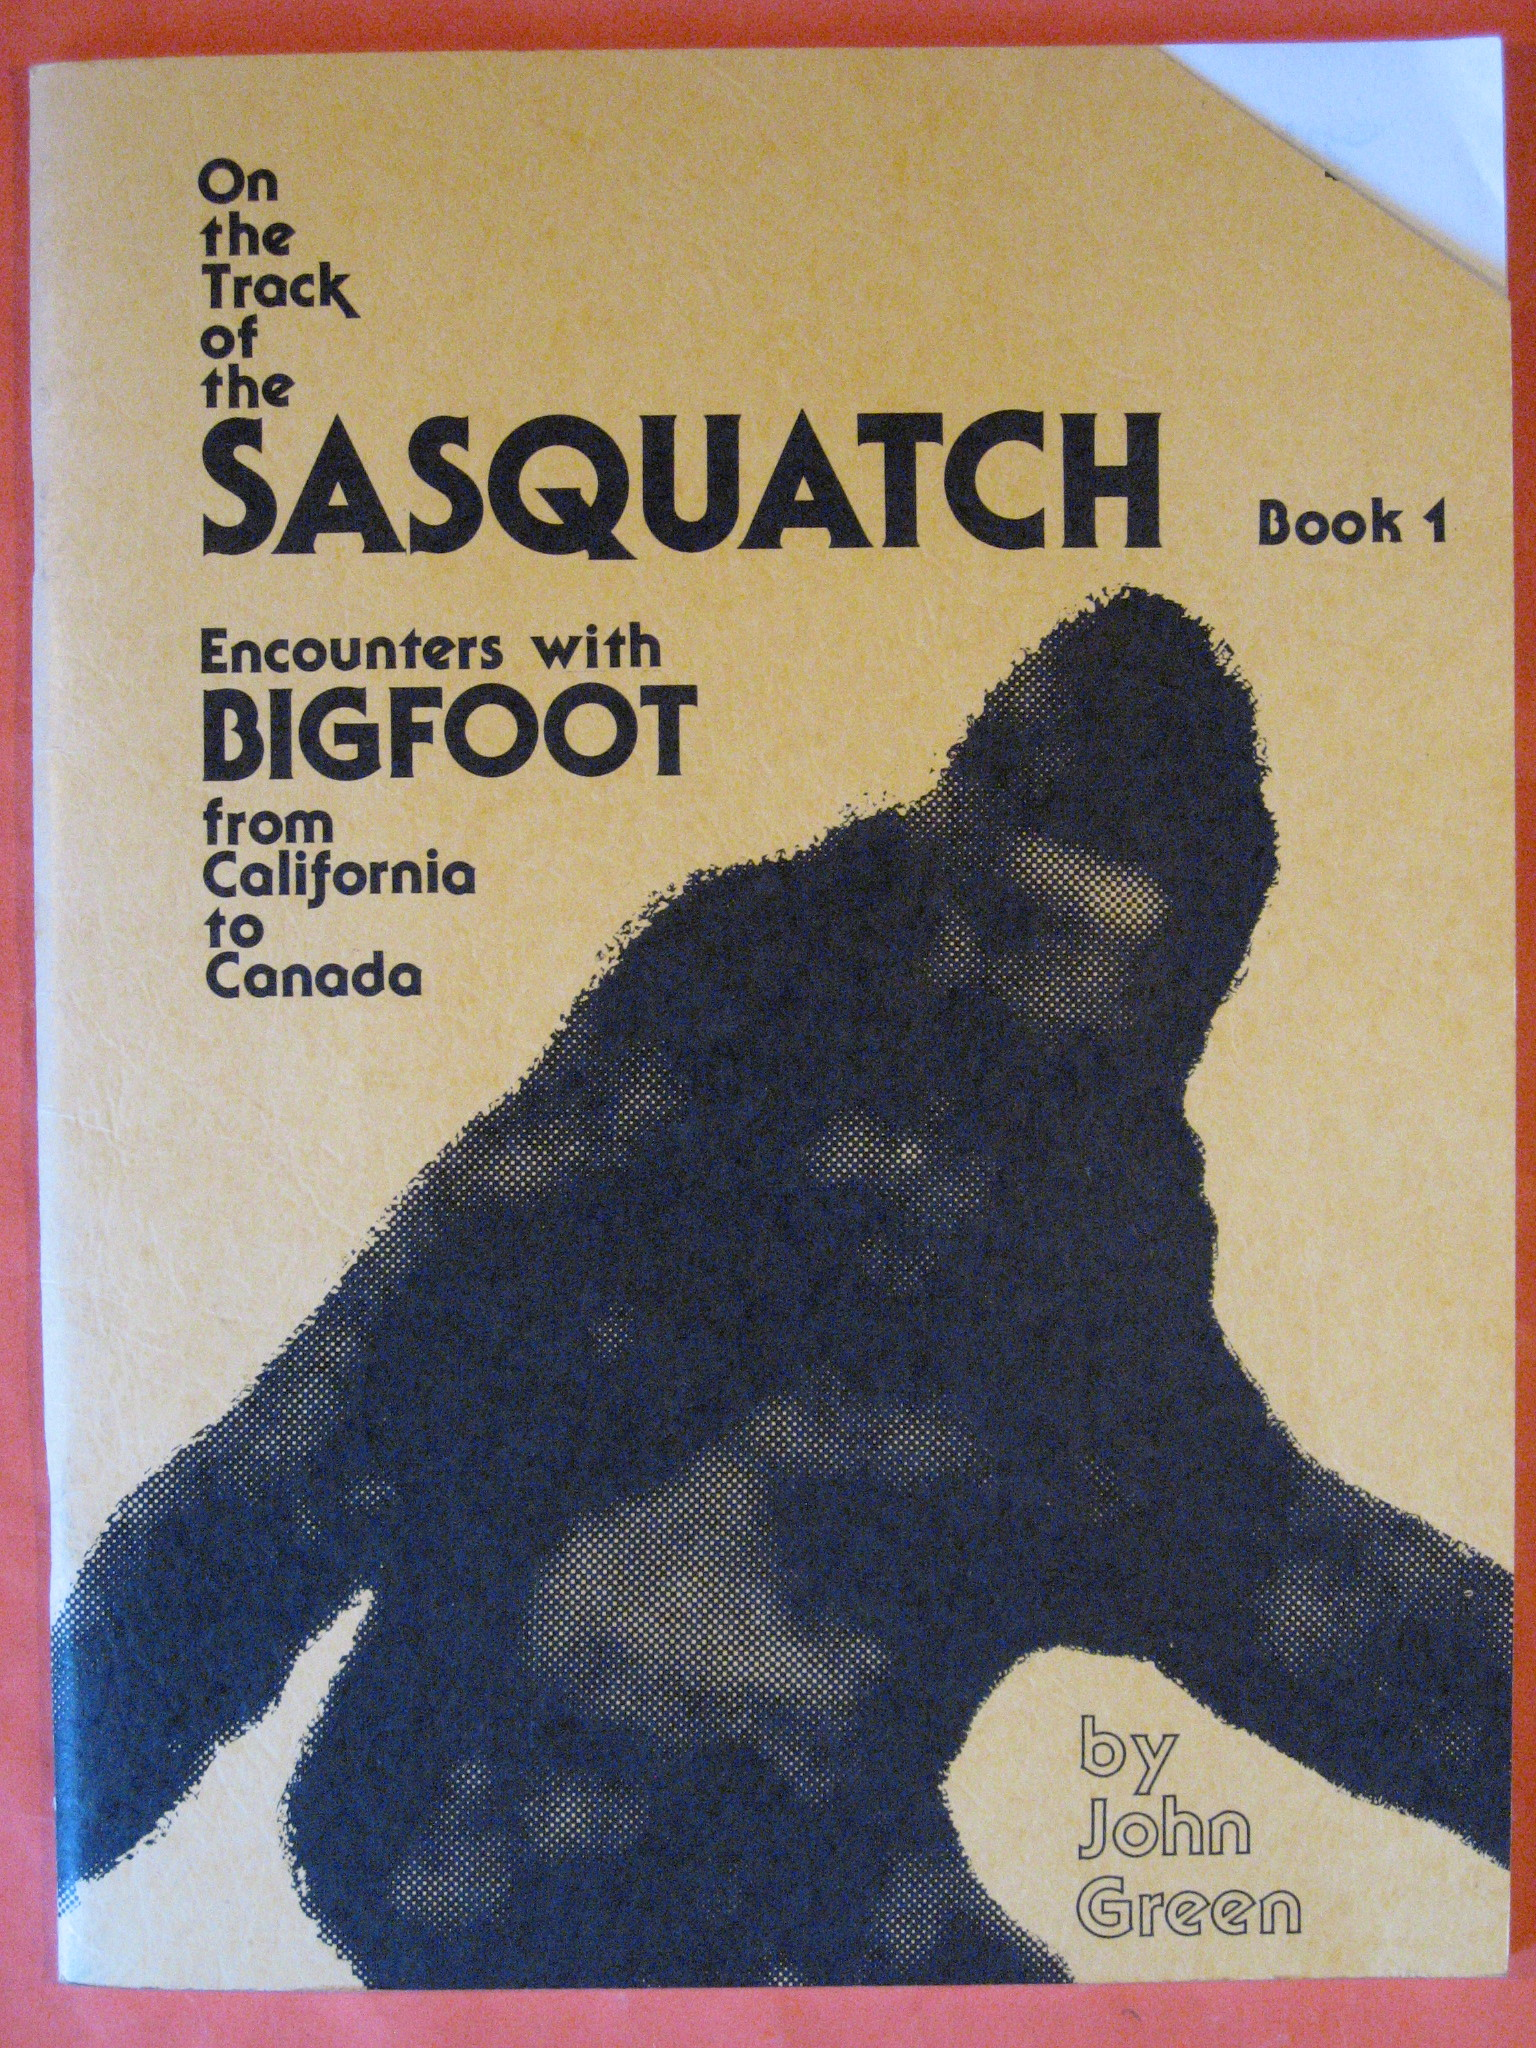 On the Track of the Sasquatch:  Encounters with Bigfoot from California to Canada (Book 1), Green, John